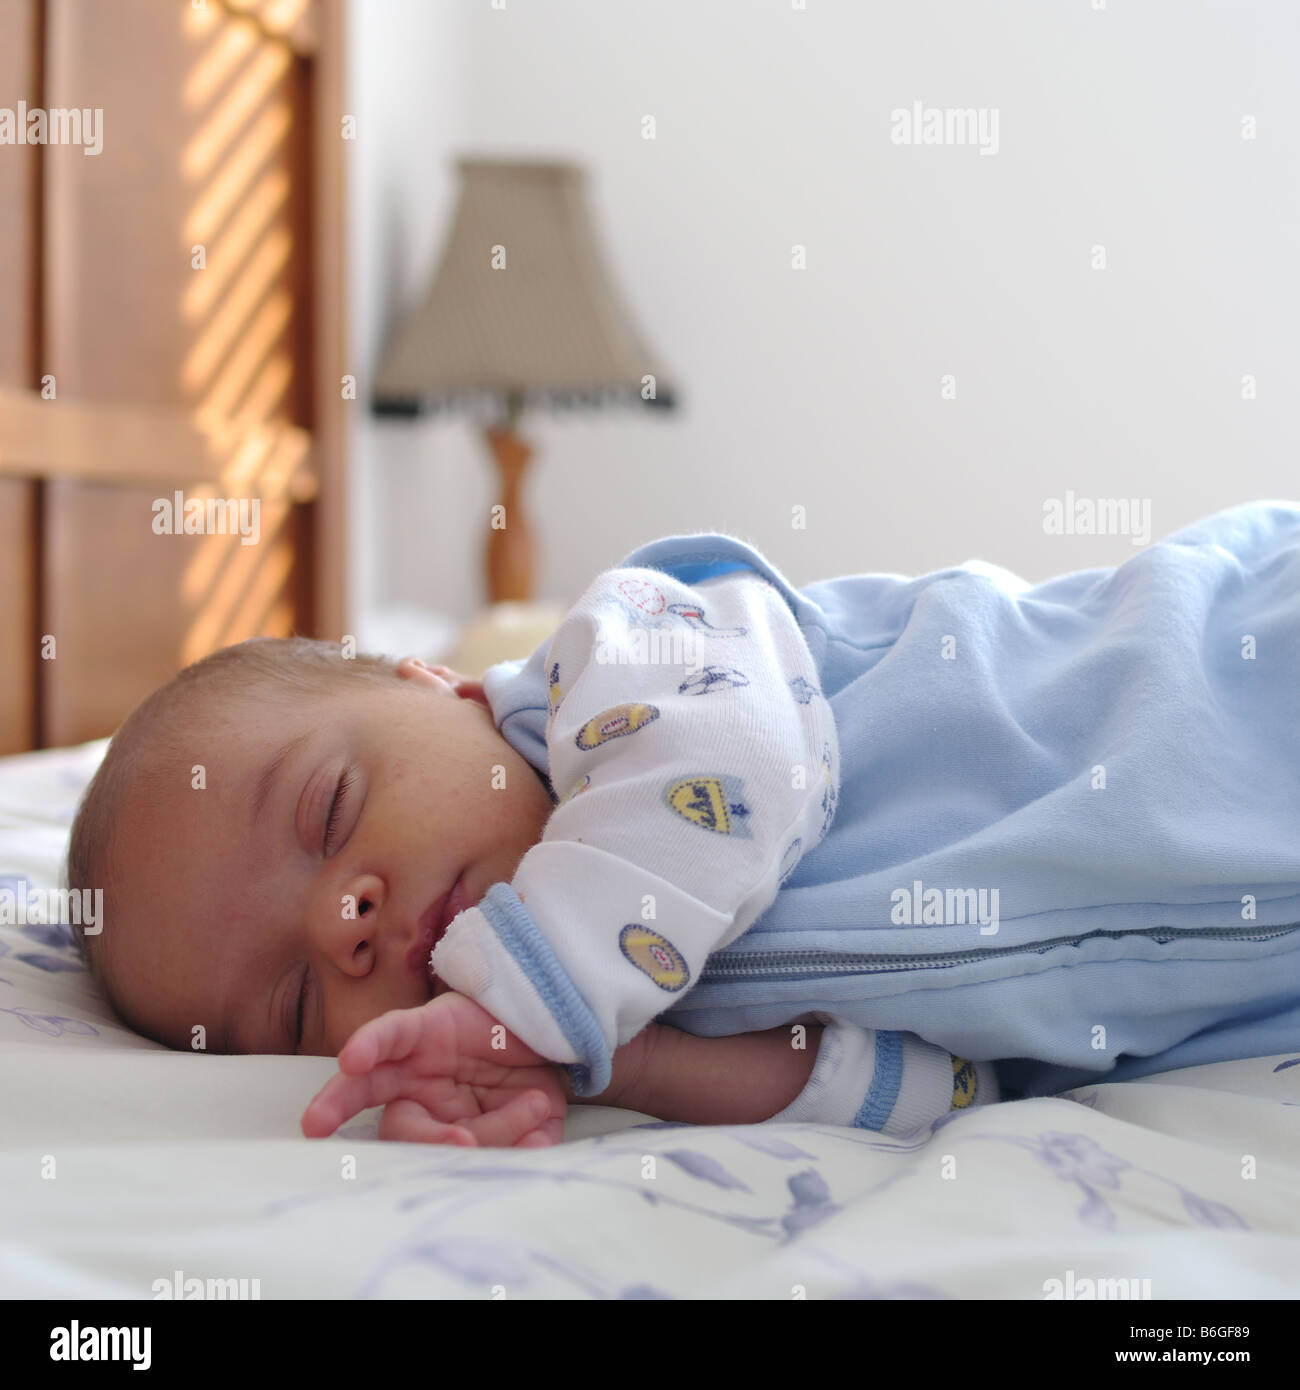 ca44fc54c 0-3 months old baby boy sleeping in parents bed Stock Photo ...